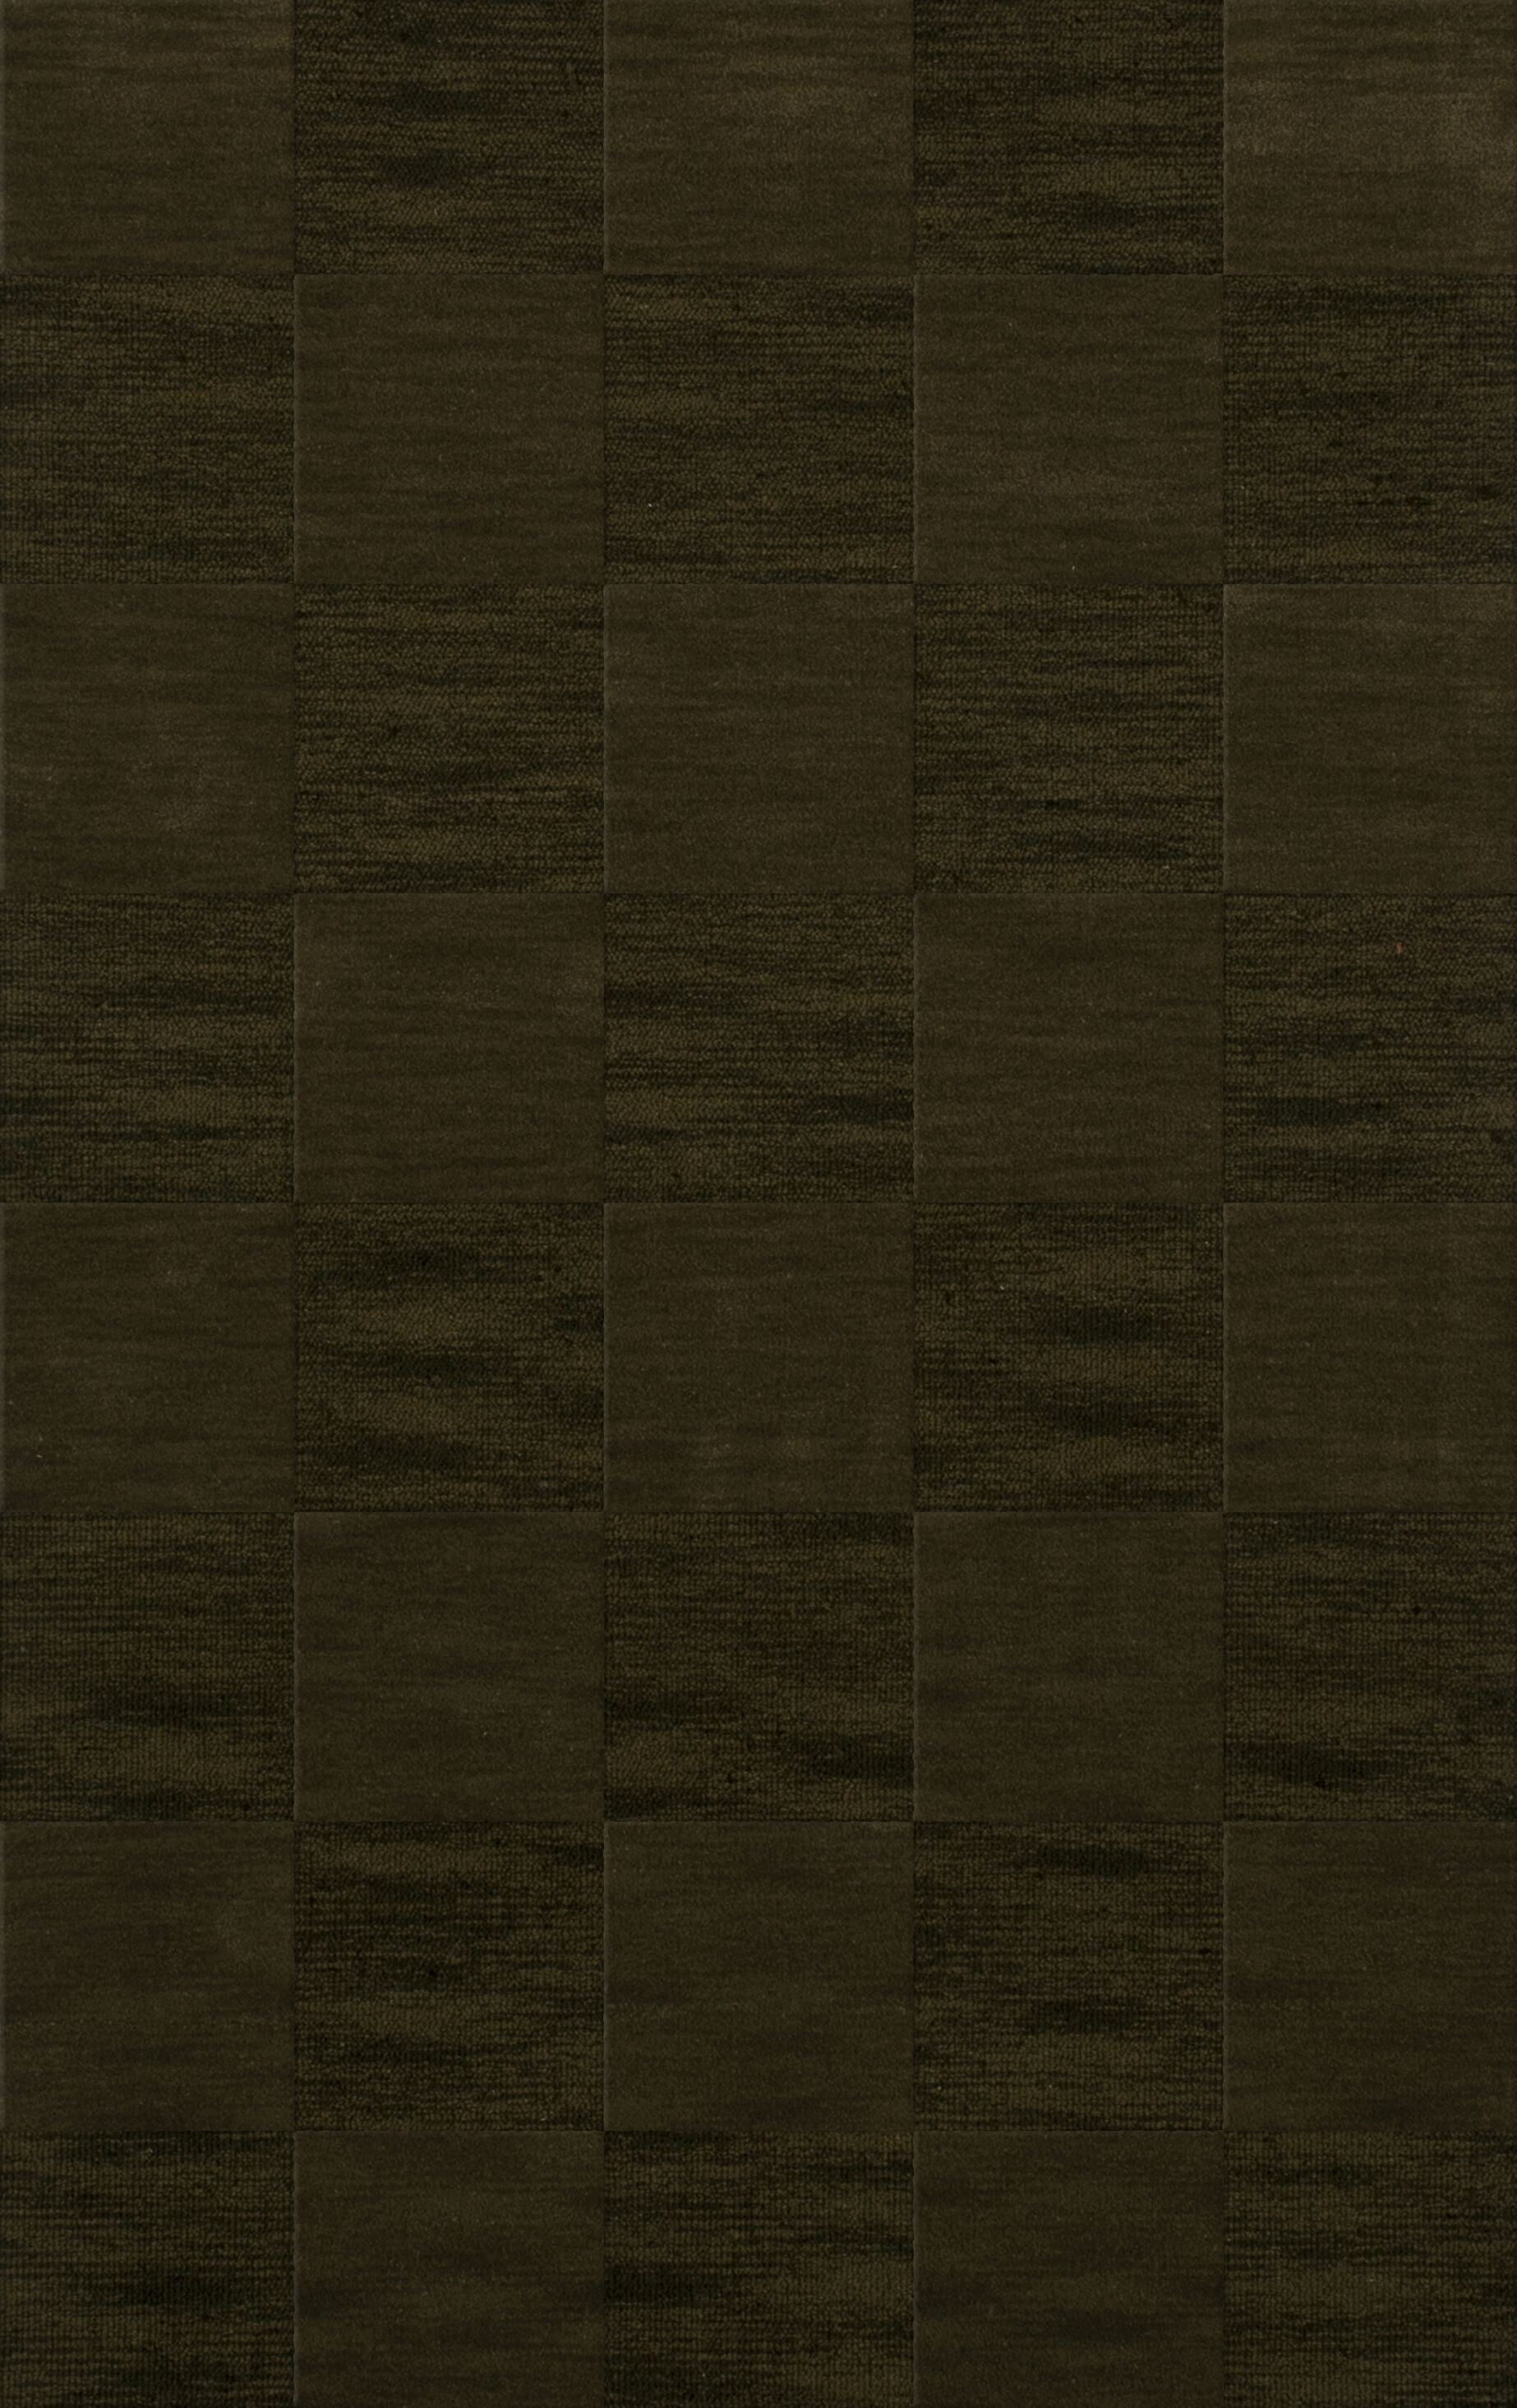 Dover Tufted Wool Olive Area Rug Rug Size: Rectangle 9' x 12'